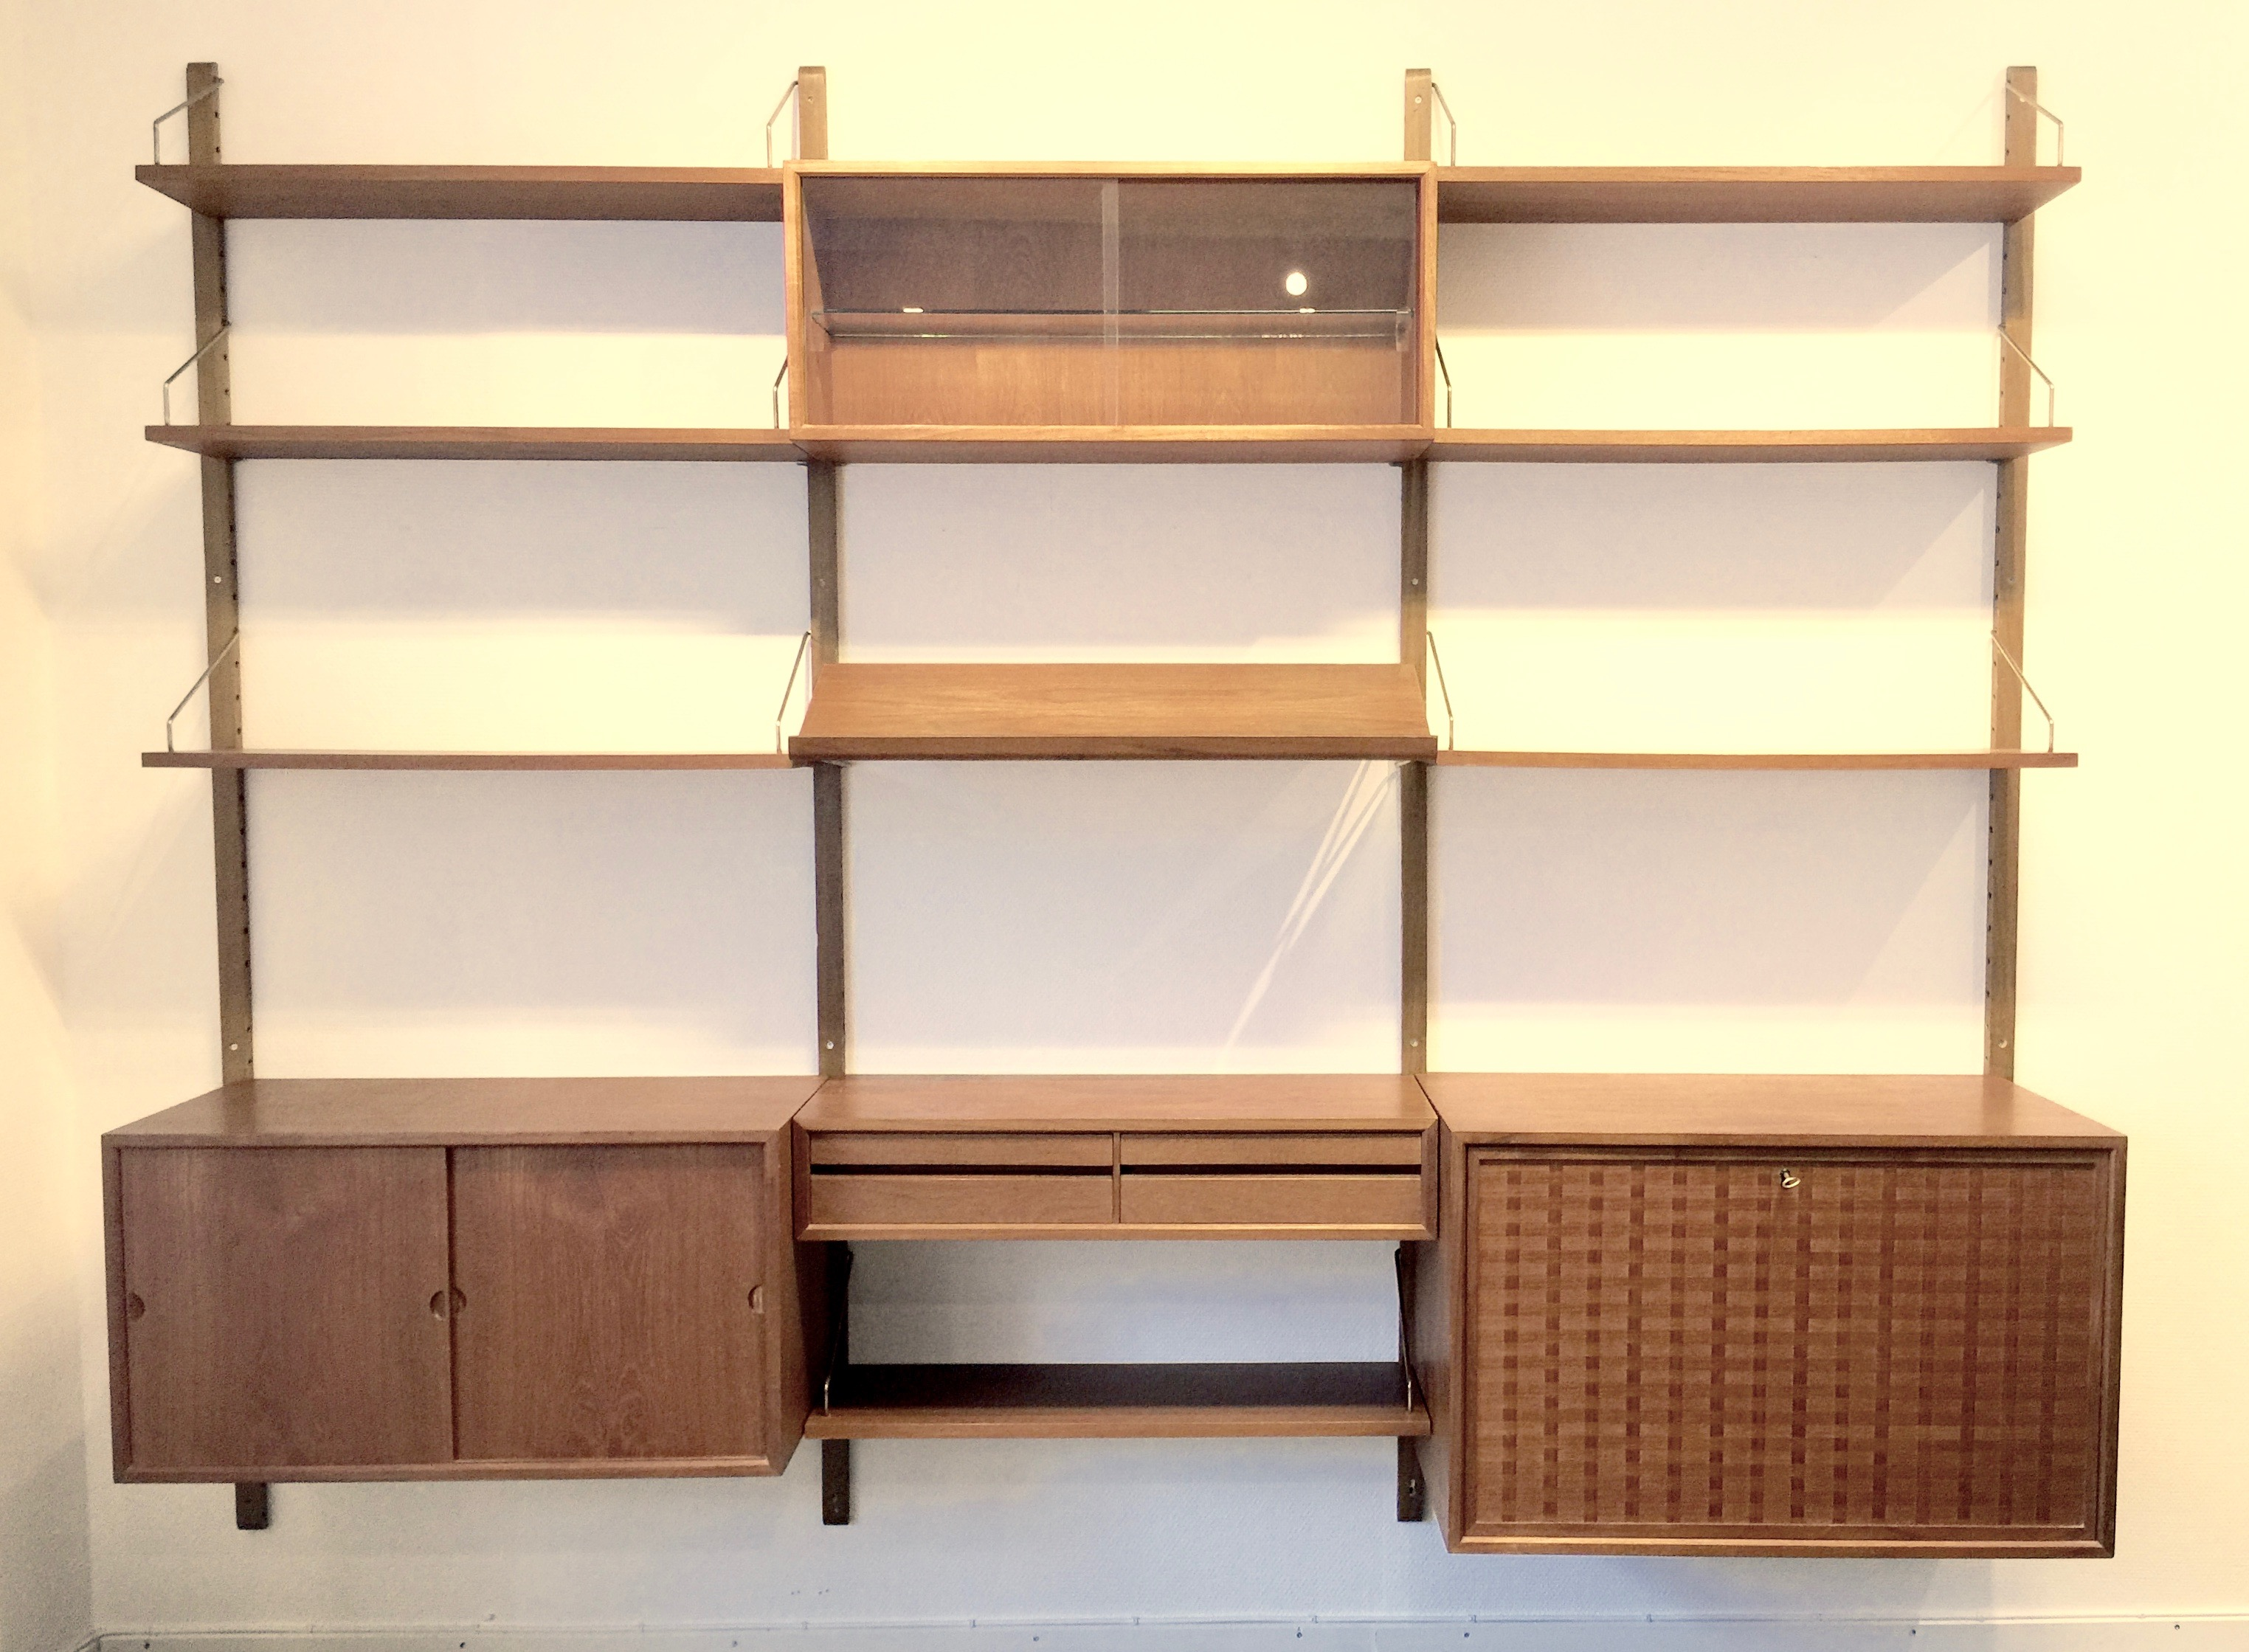 Wall system in teak by Poul Cadovius